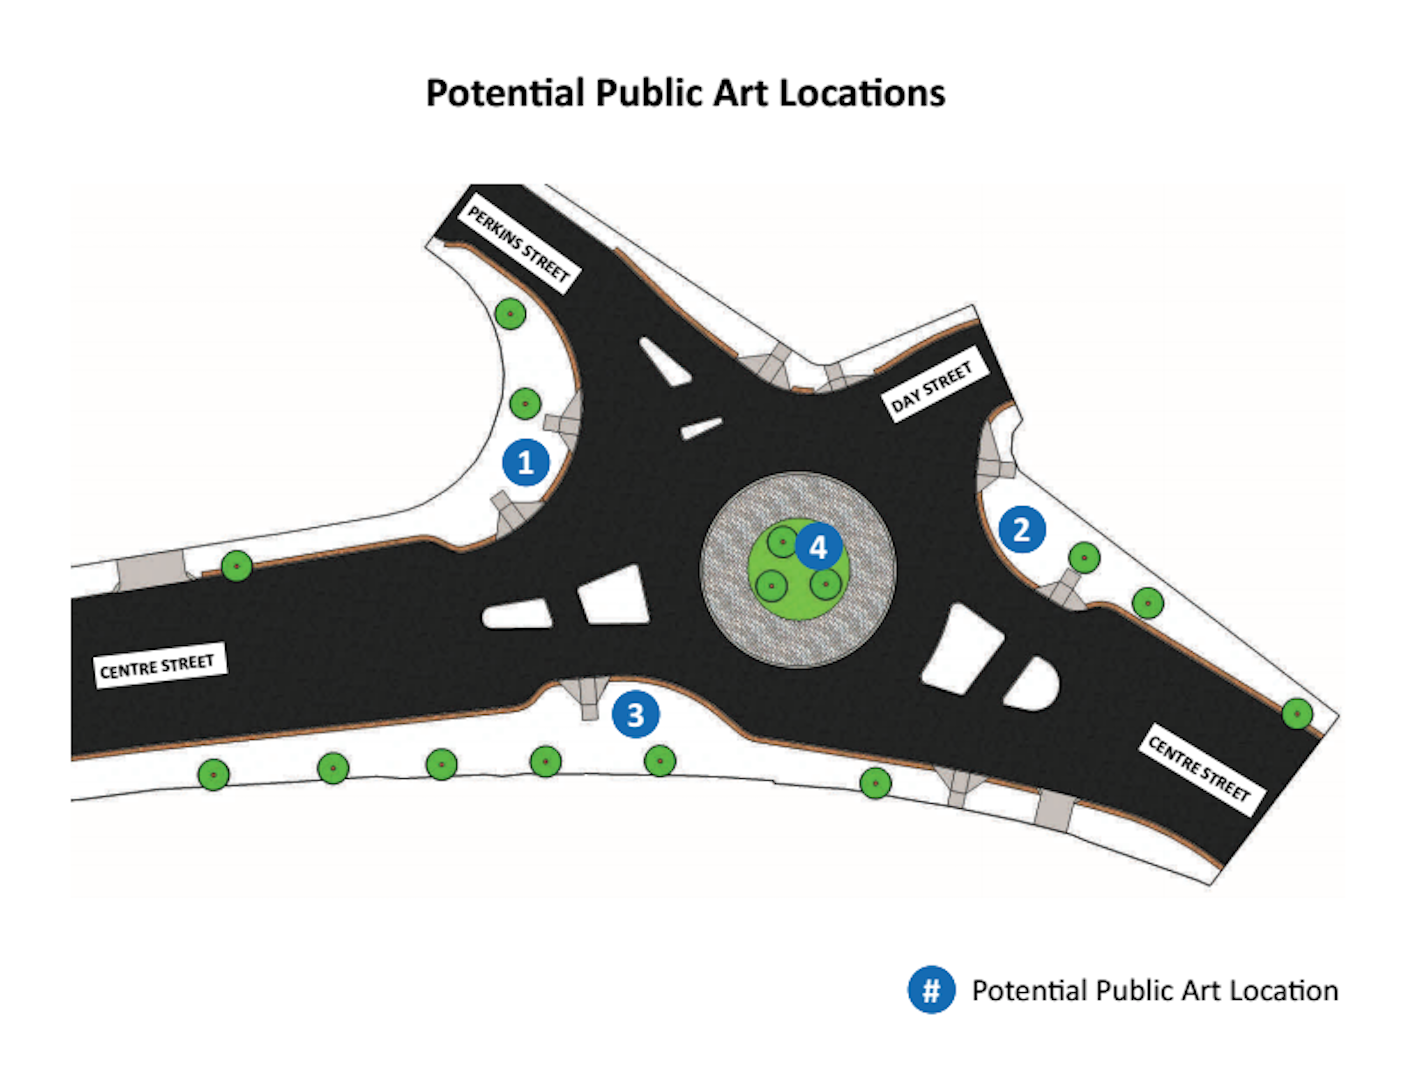 A map showing the potential public art locations in Hyde Park